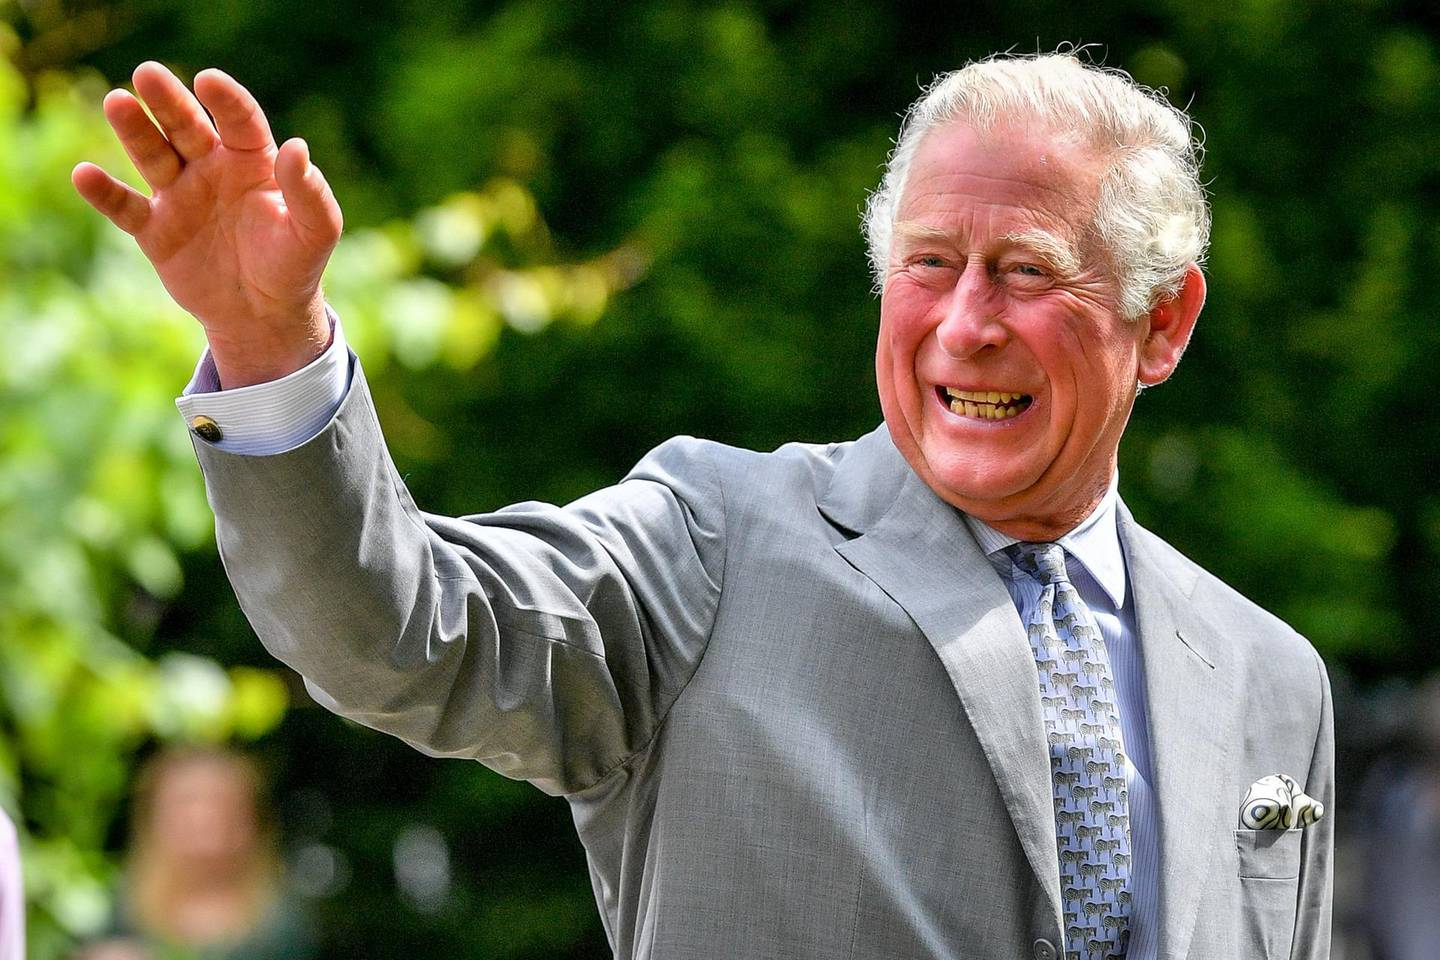 GLOUCESTER, ENGLAND - JUNE 16: Prince Charles, Prince of Wales gestures to crowds of hospital staff watching from a distance as he chats with front line key workers who who have responded to the COVID-19 pandemic during a visit to Gloucestershire Royal Hospital on June 16, 2020 in Gloucester, England. (Photo by WPA Pool-Ben Birchall/Getty Images)